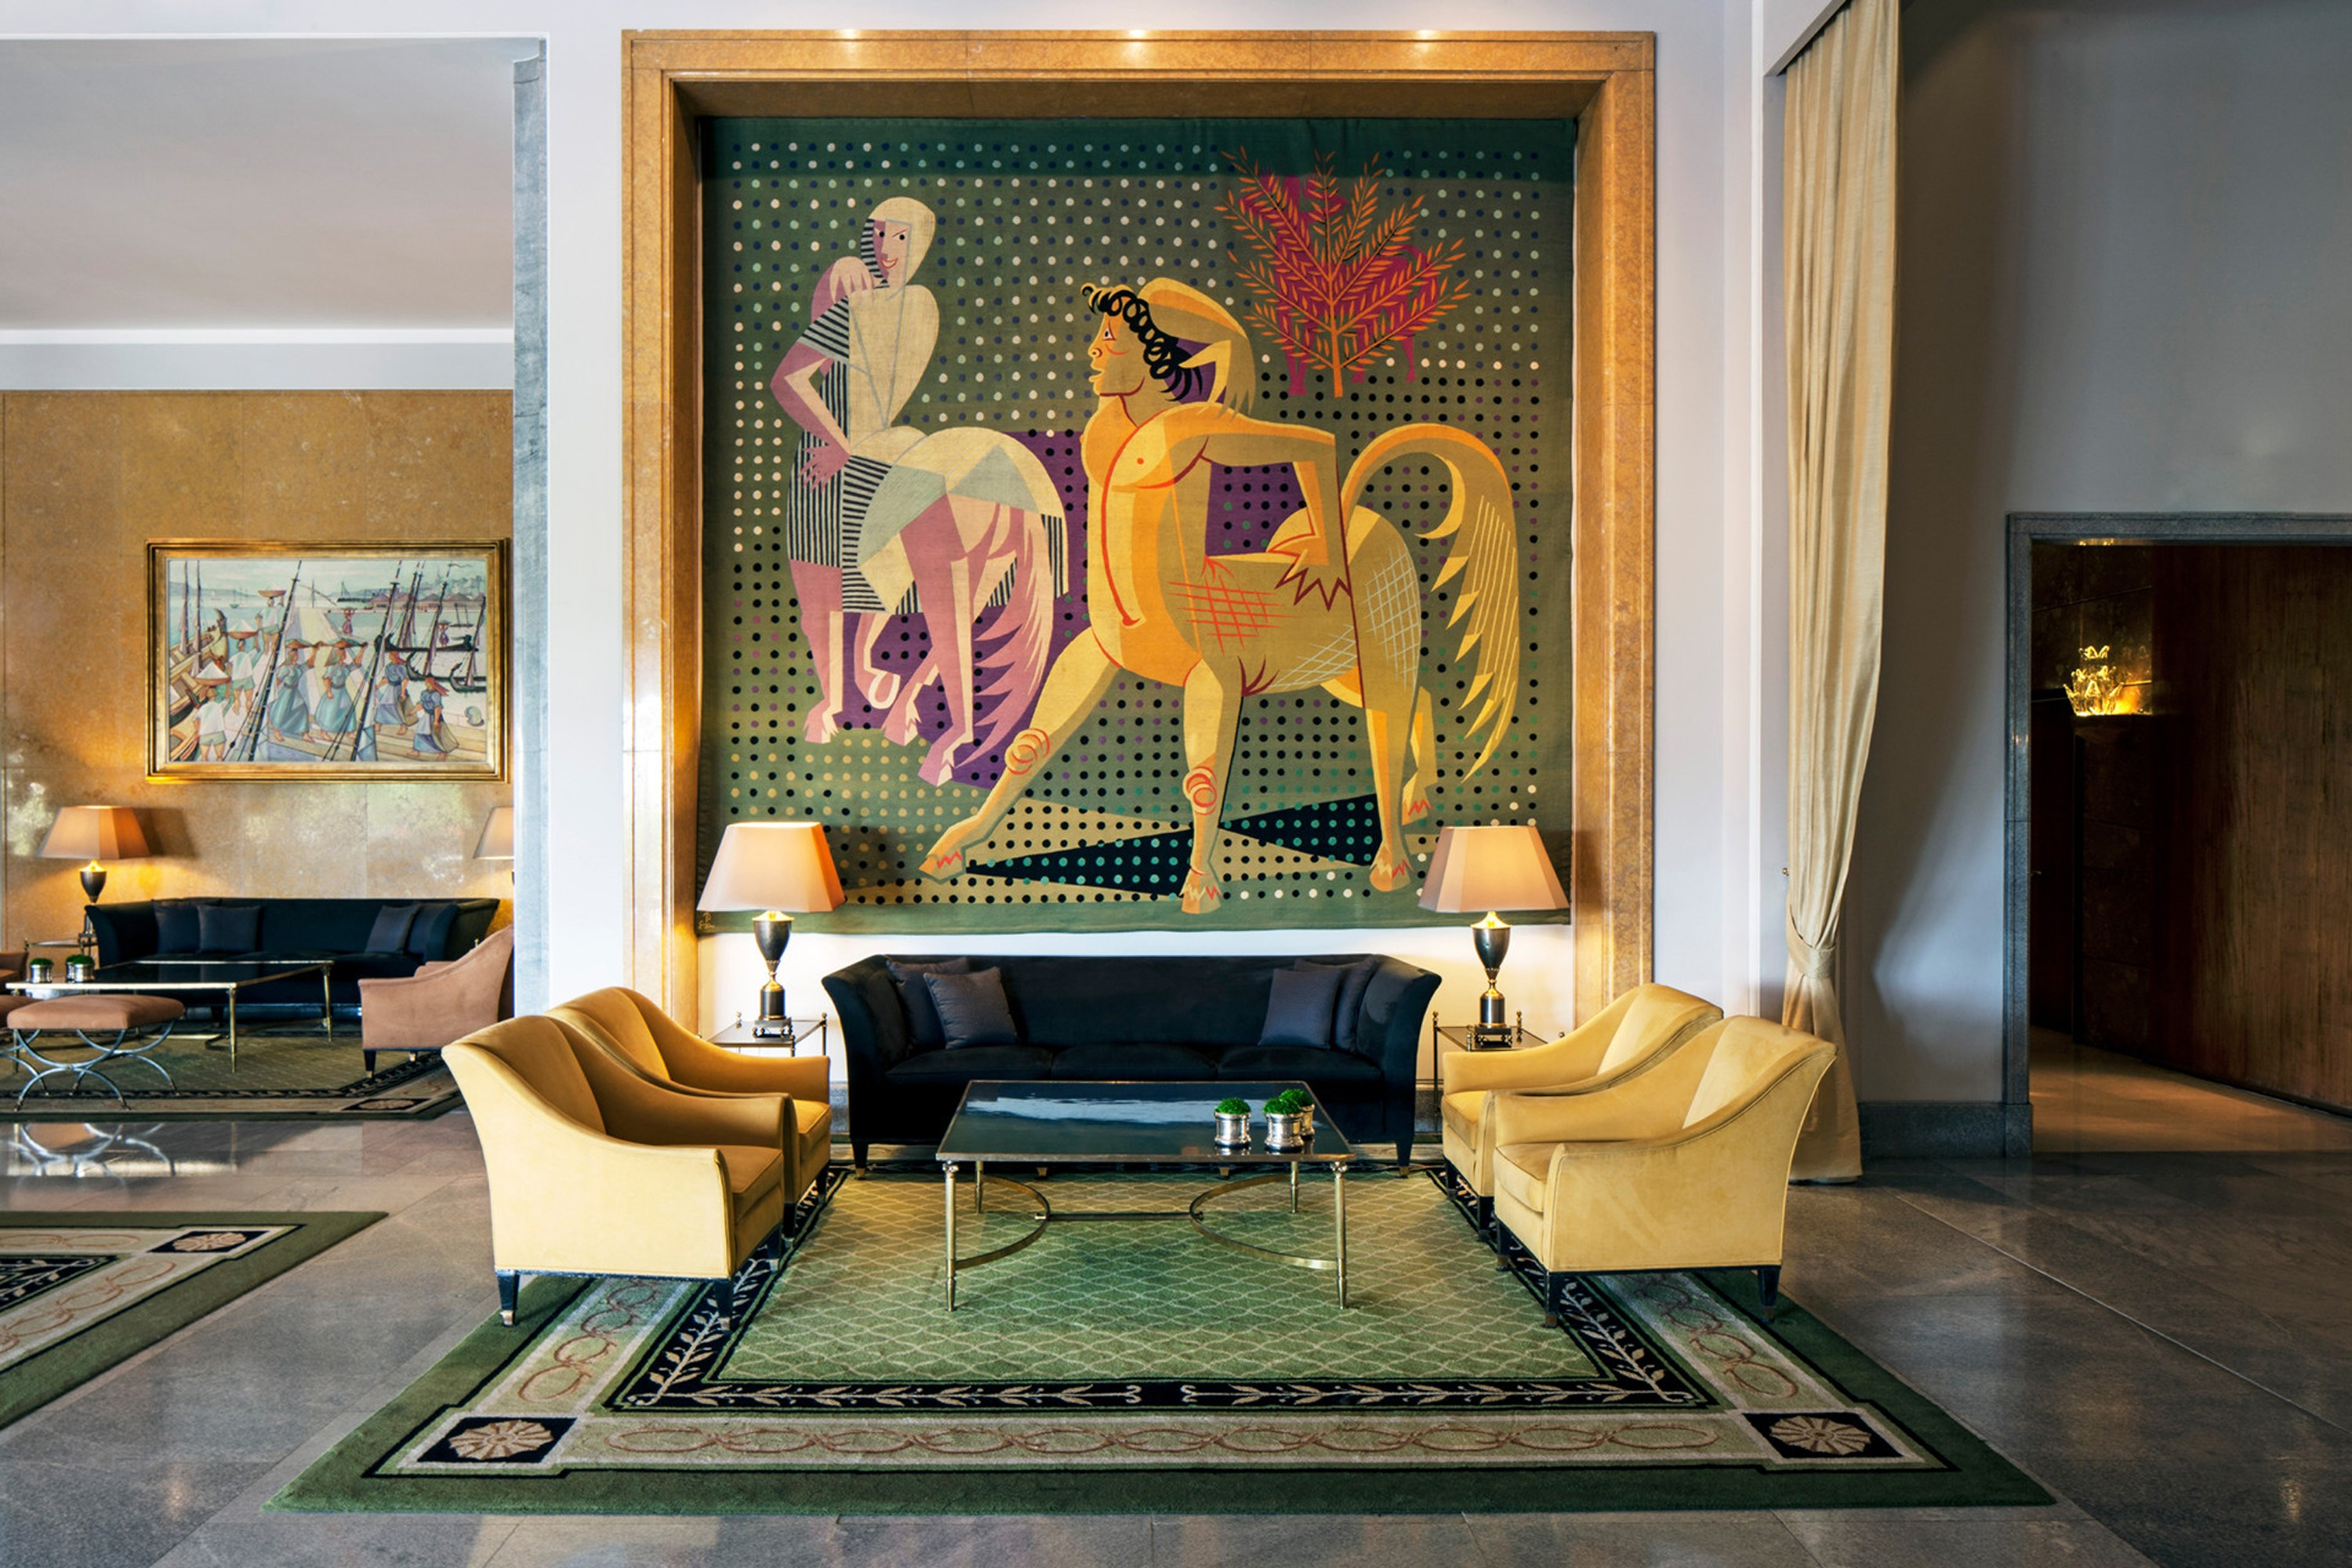 Best Hotels in Central Portugal hotels Best Hotels in Central Portugal Four Seasons Hotel Ritz Lisbon Lobby Lounge